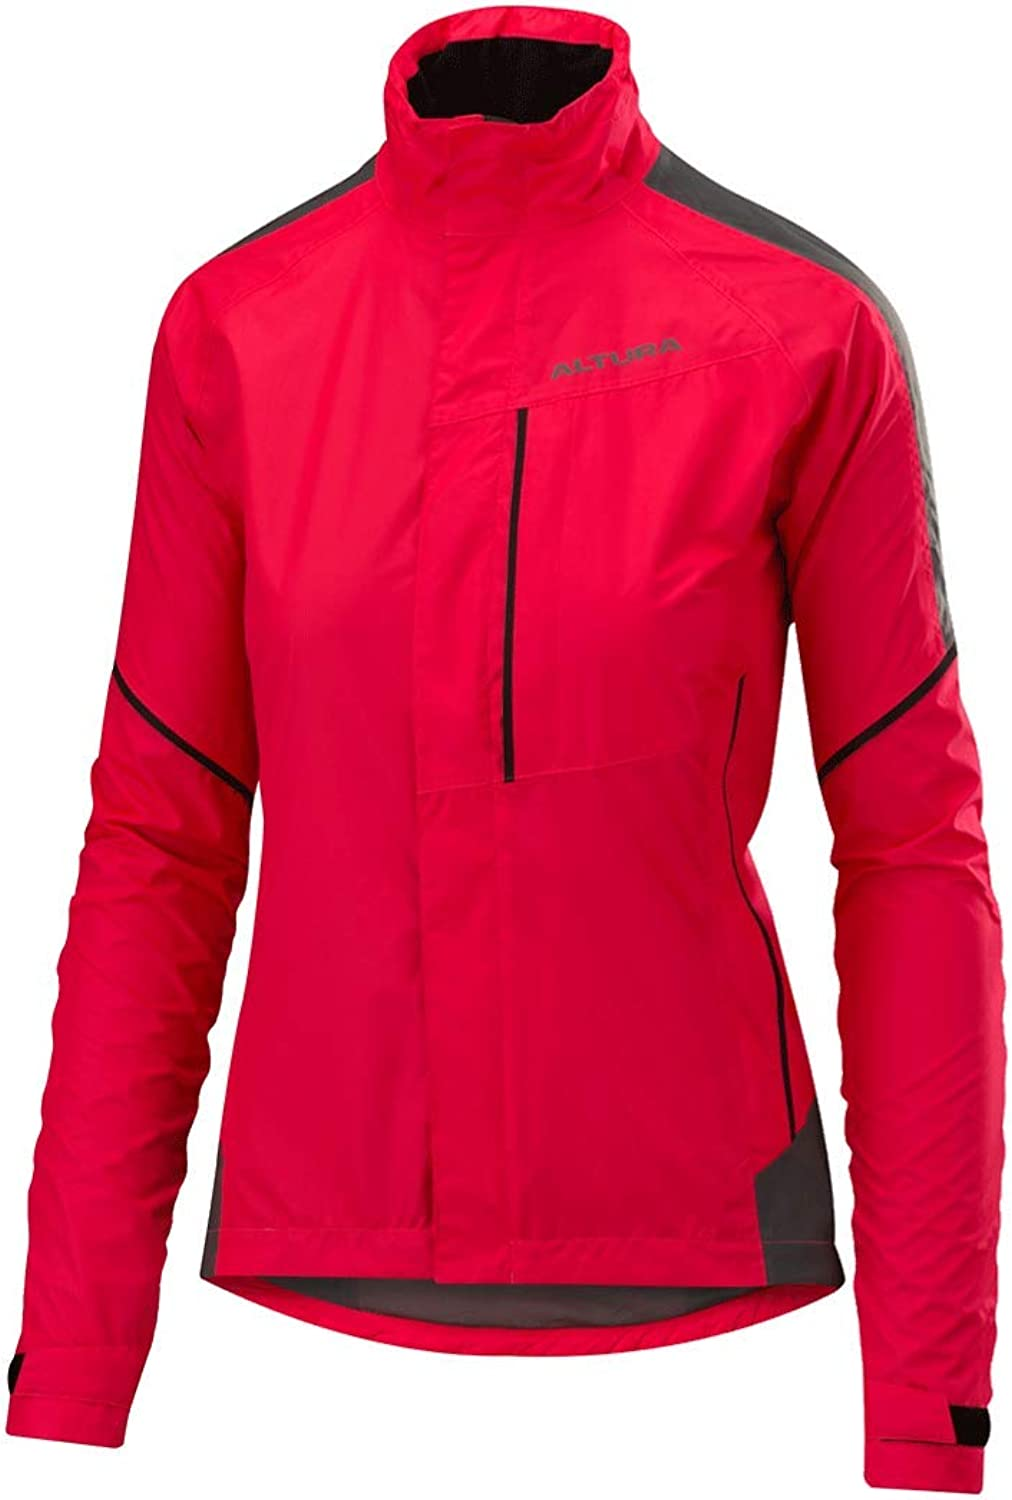 Altura Hiviz Pink 2018 Nightvision Twilight Womens Cycling Waterproof Jacket